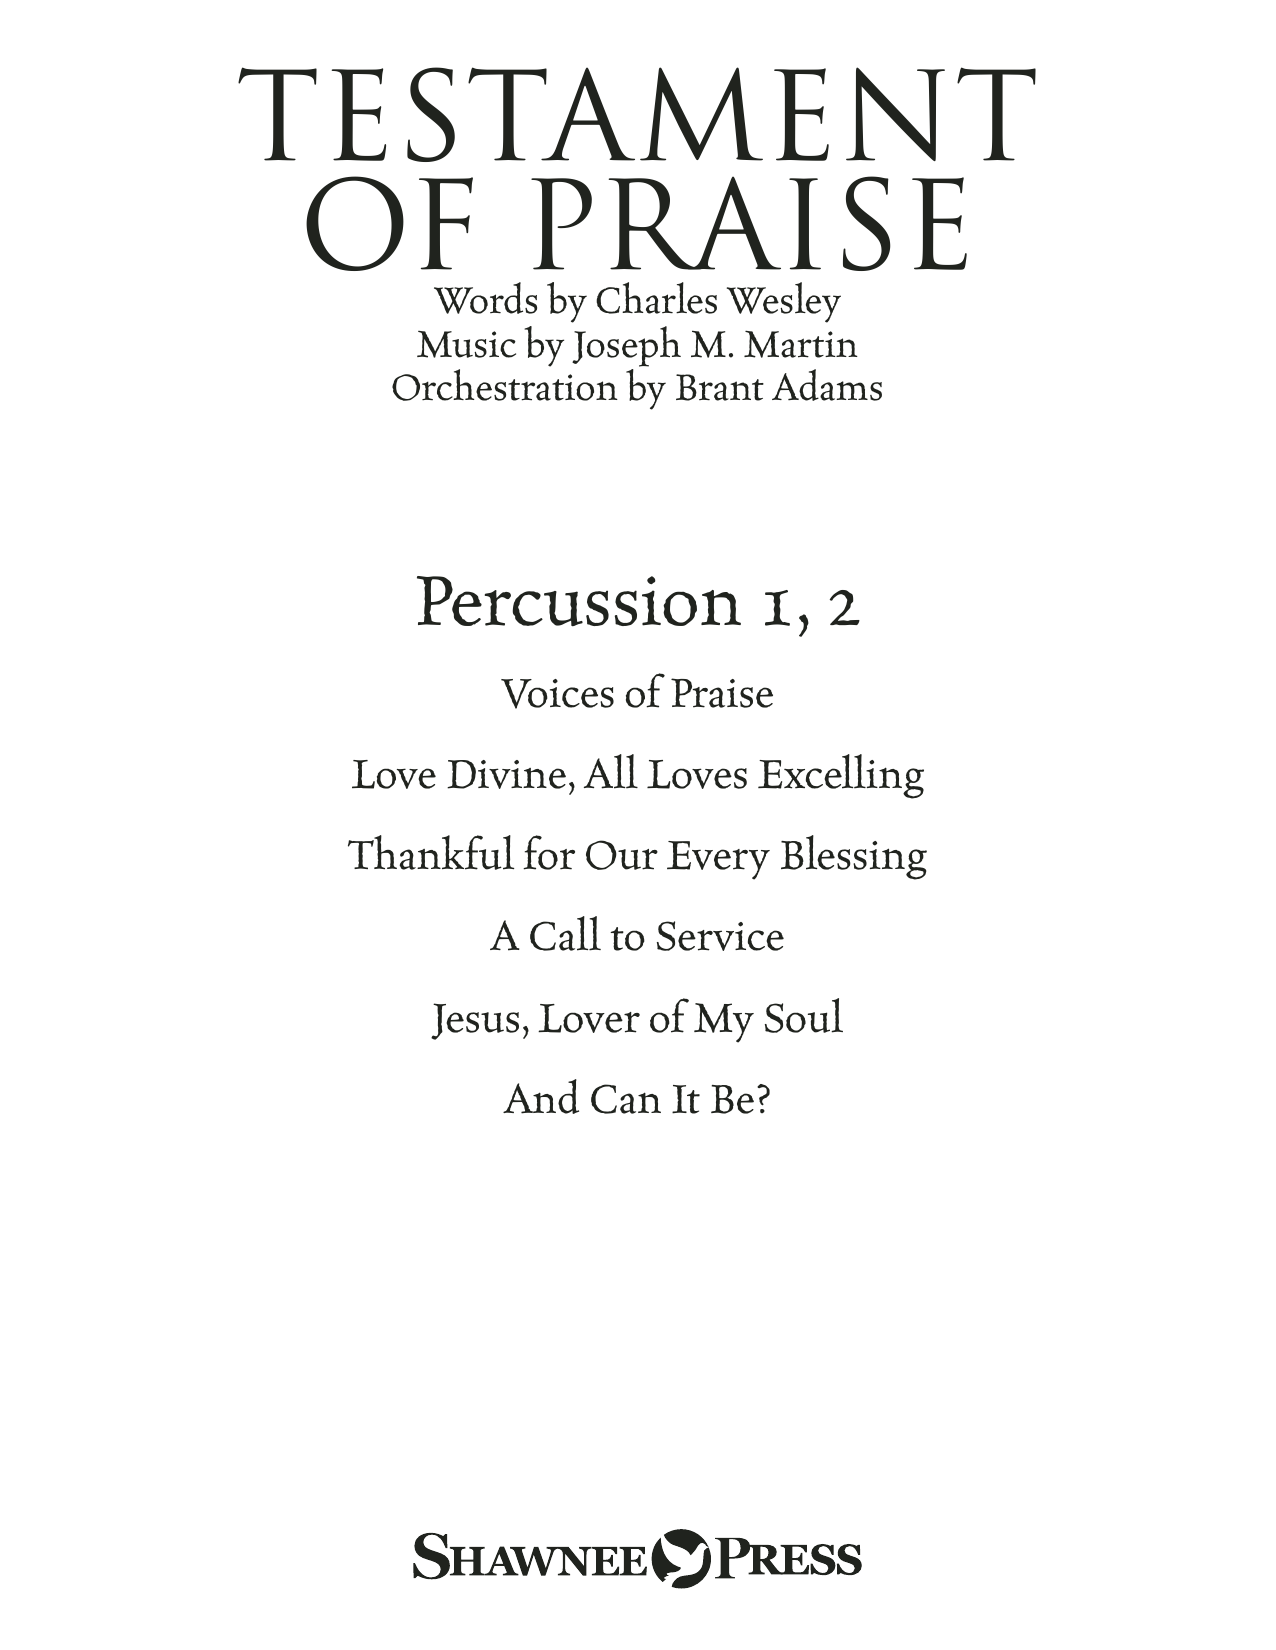 Joseph M. Martin Testament of Praise (A Celebration of Faith) - Percussion 1 & 2 sheet music notes and chords. Download Printable PDF.